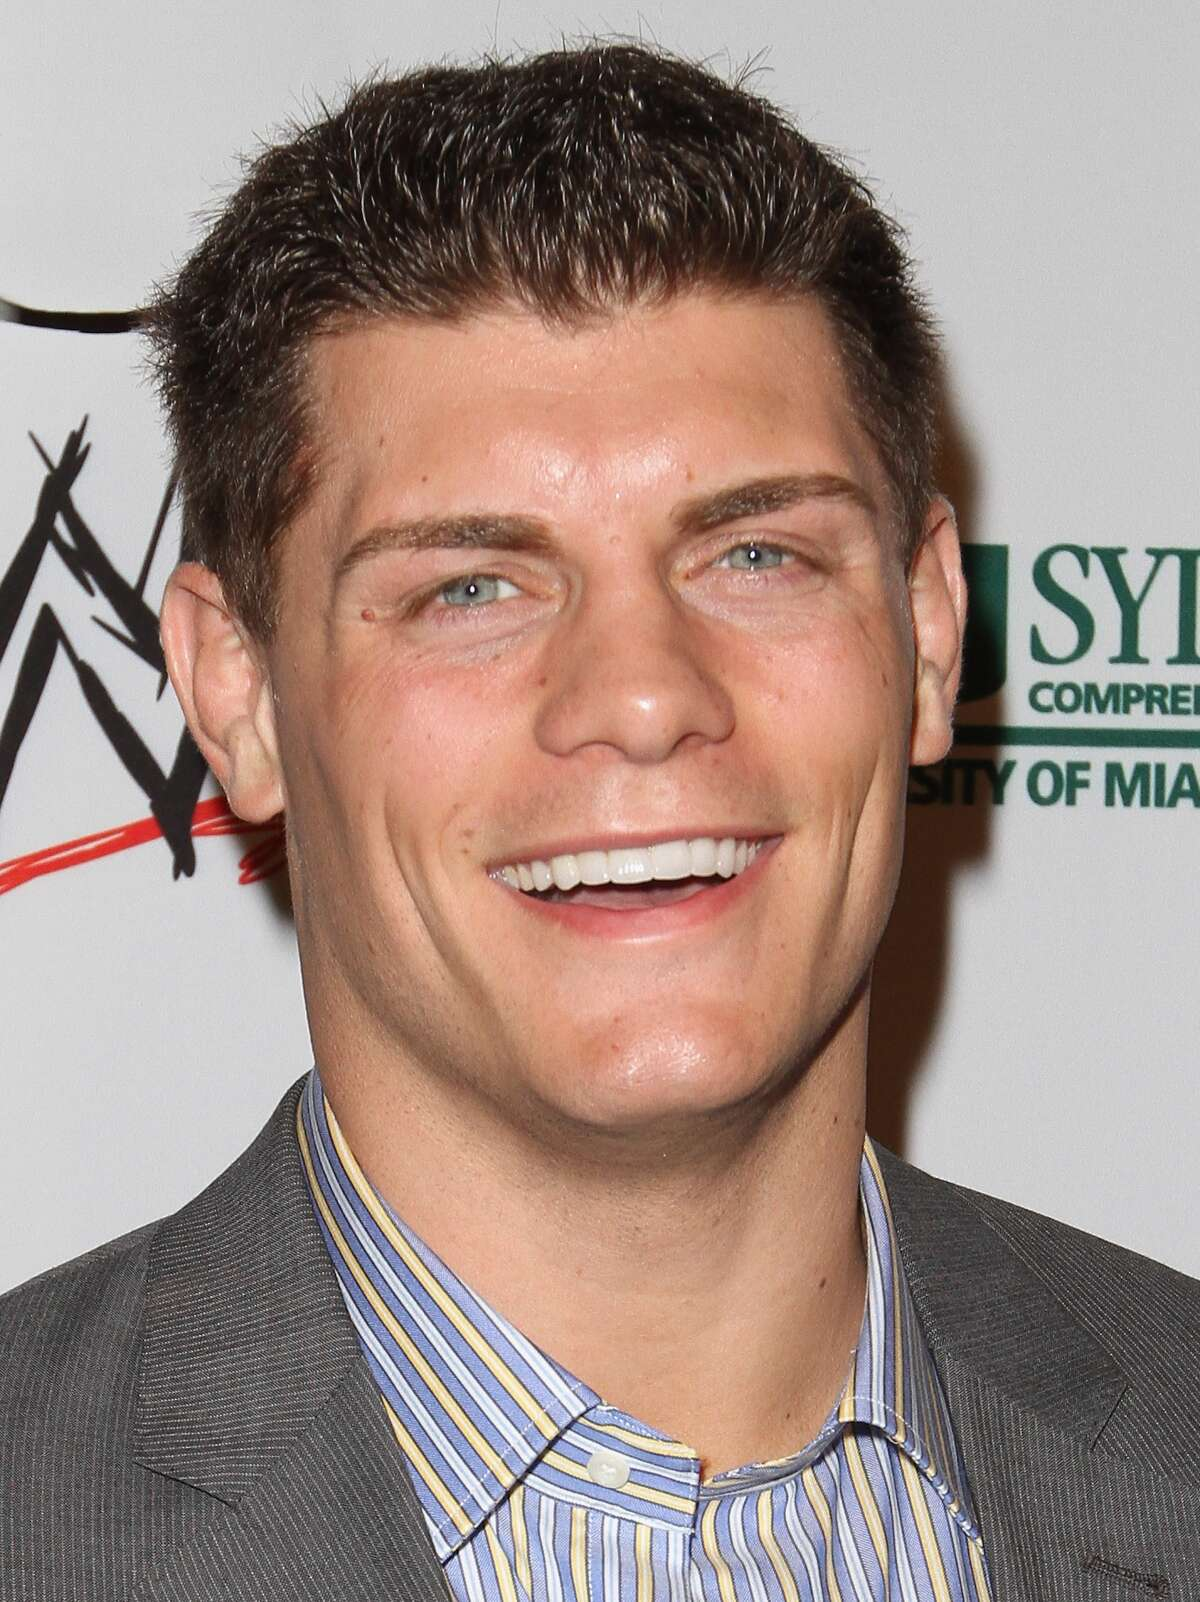 Former WWE star Cody Rhodes, who lives in Dallas, is shown at a WrestleMania event in Miami Beach in 2012. Keep clicking to see other wrestling stars with Texas ties.